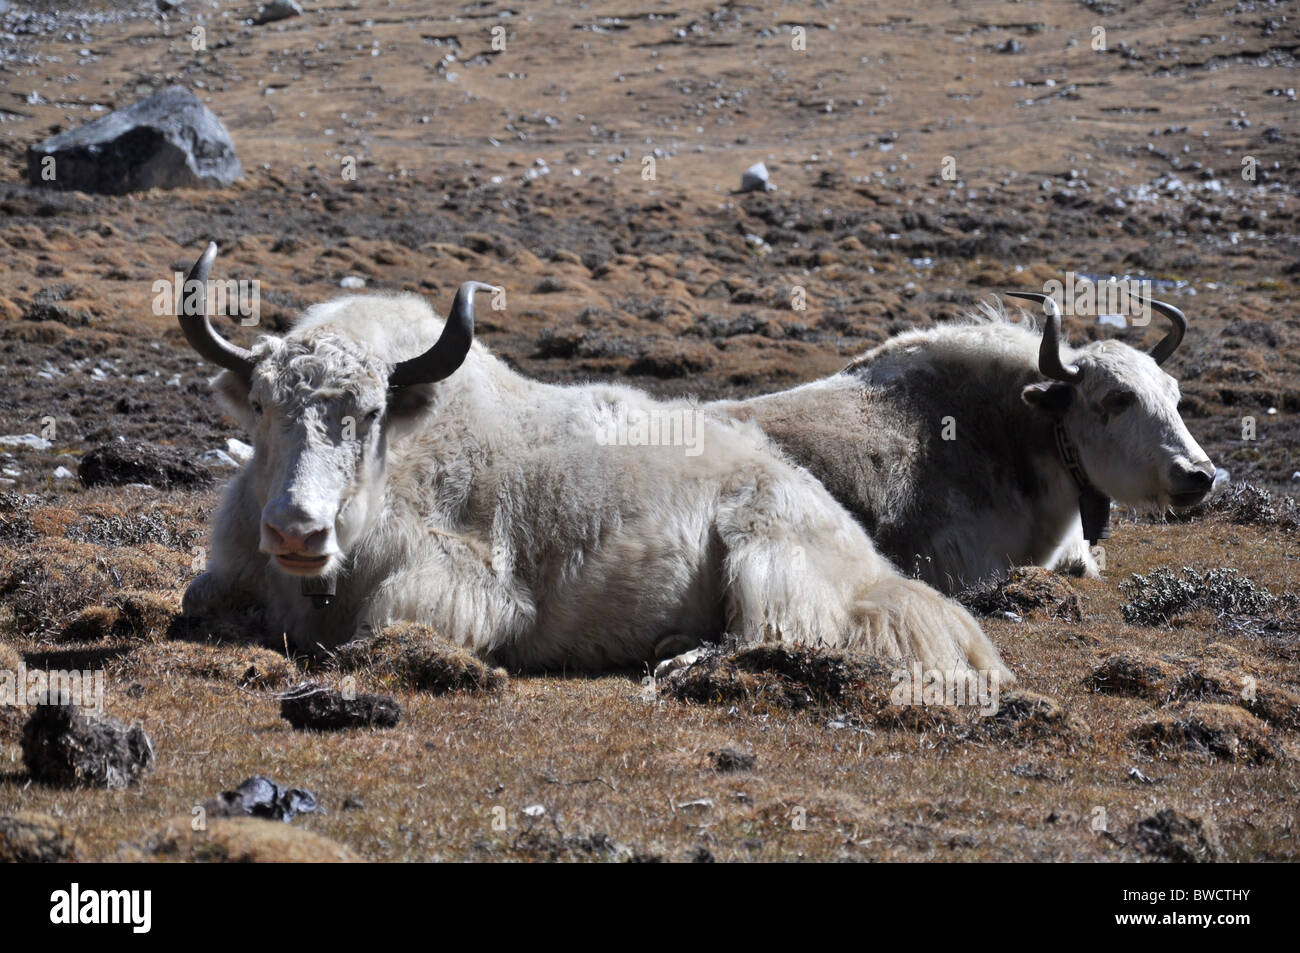 Pair of Yaks near Gokyo in the high Himalaya, Nepal - Stock Image